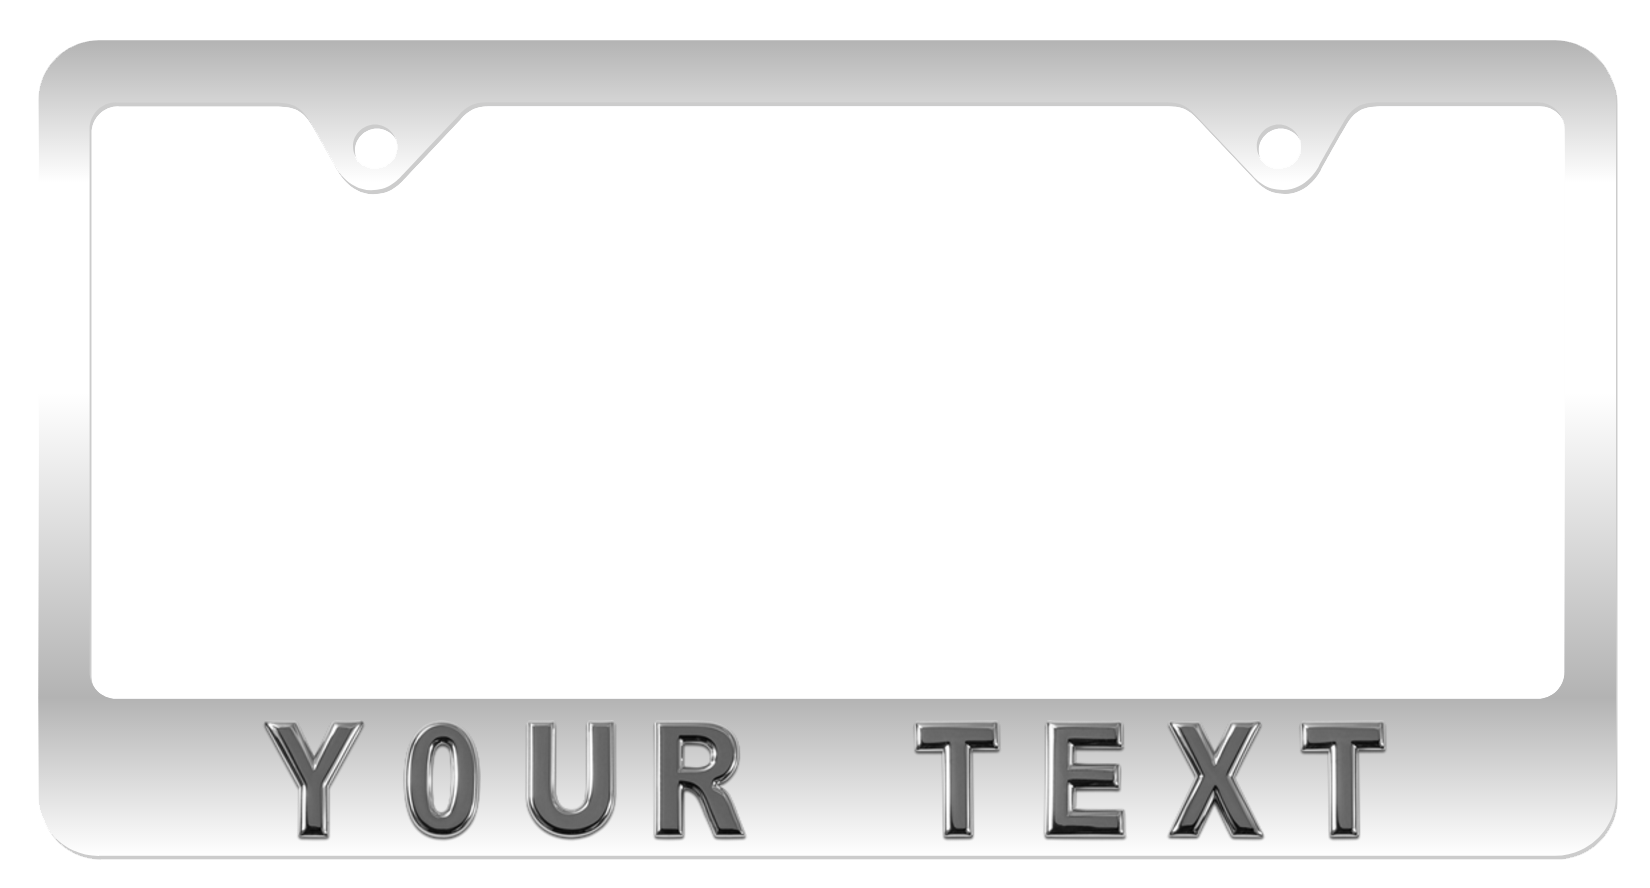 Personalize Your Own License Plate Frame